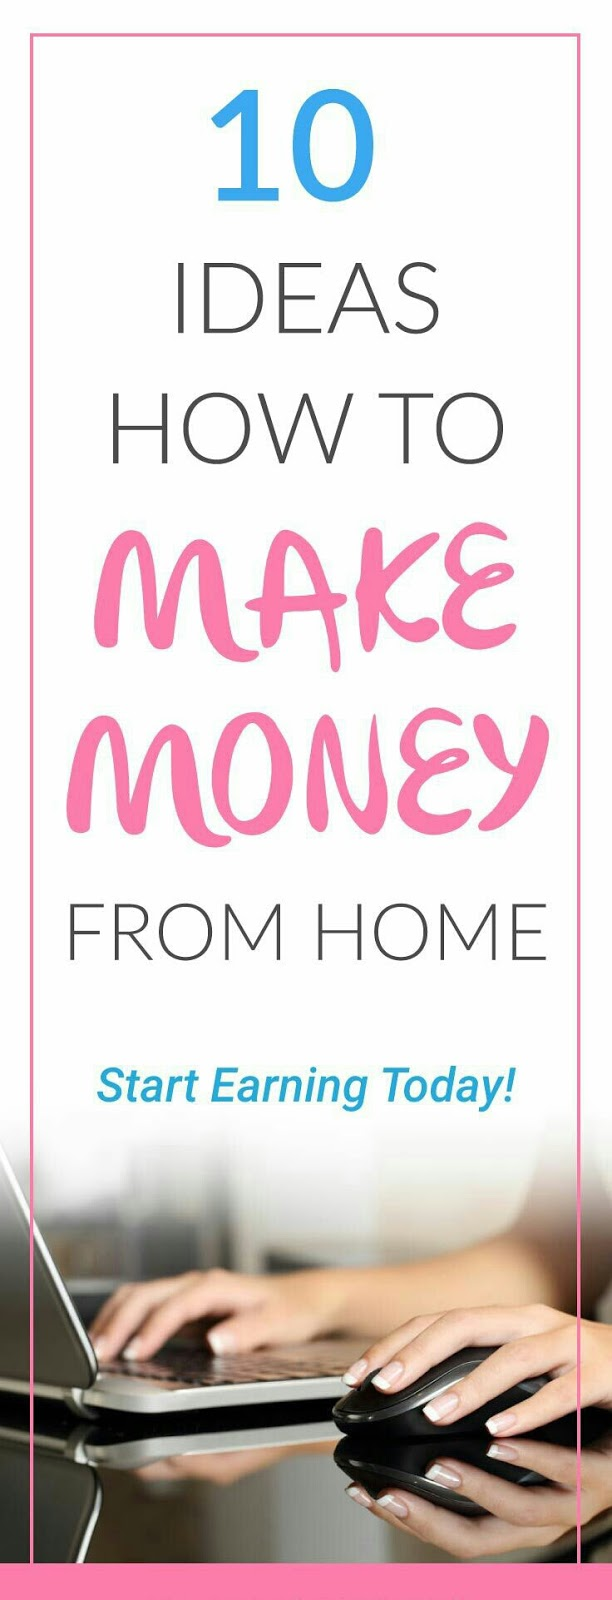 10 IDEAS HOW TO MAKE MONEY FROM HOME. START EARNING TODAY! - The doubled